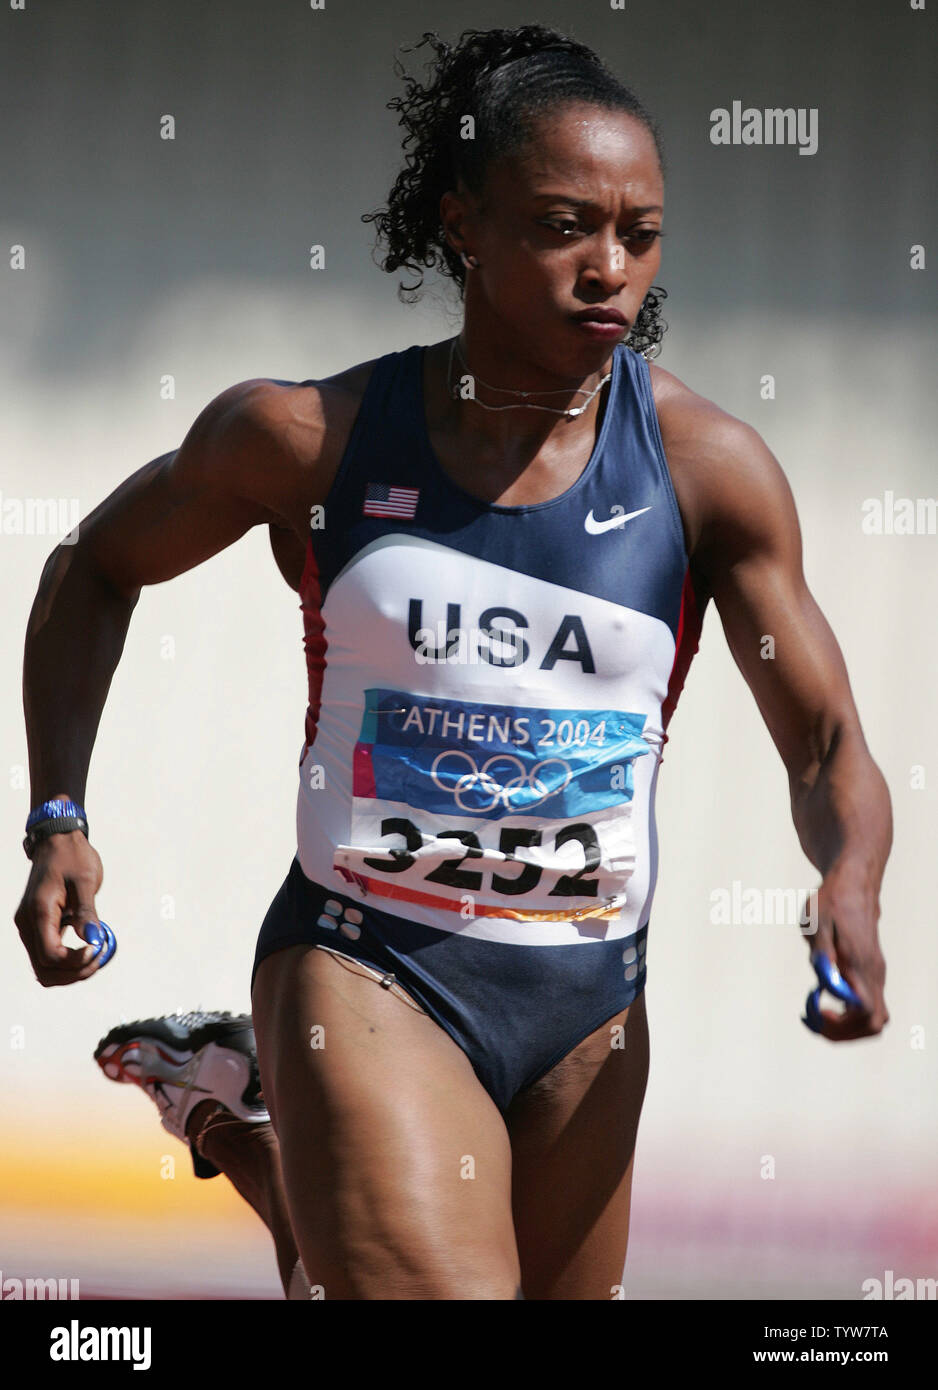 Gail Devers of the USA qualifies into the next round of 100m heats in Track And Field at the 2004 Athens Summer Olympic Games, August 20, 2004.   (UPI / Claus Andersen) - Stock Image